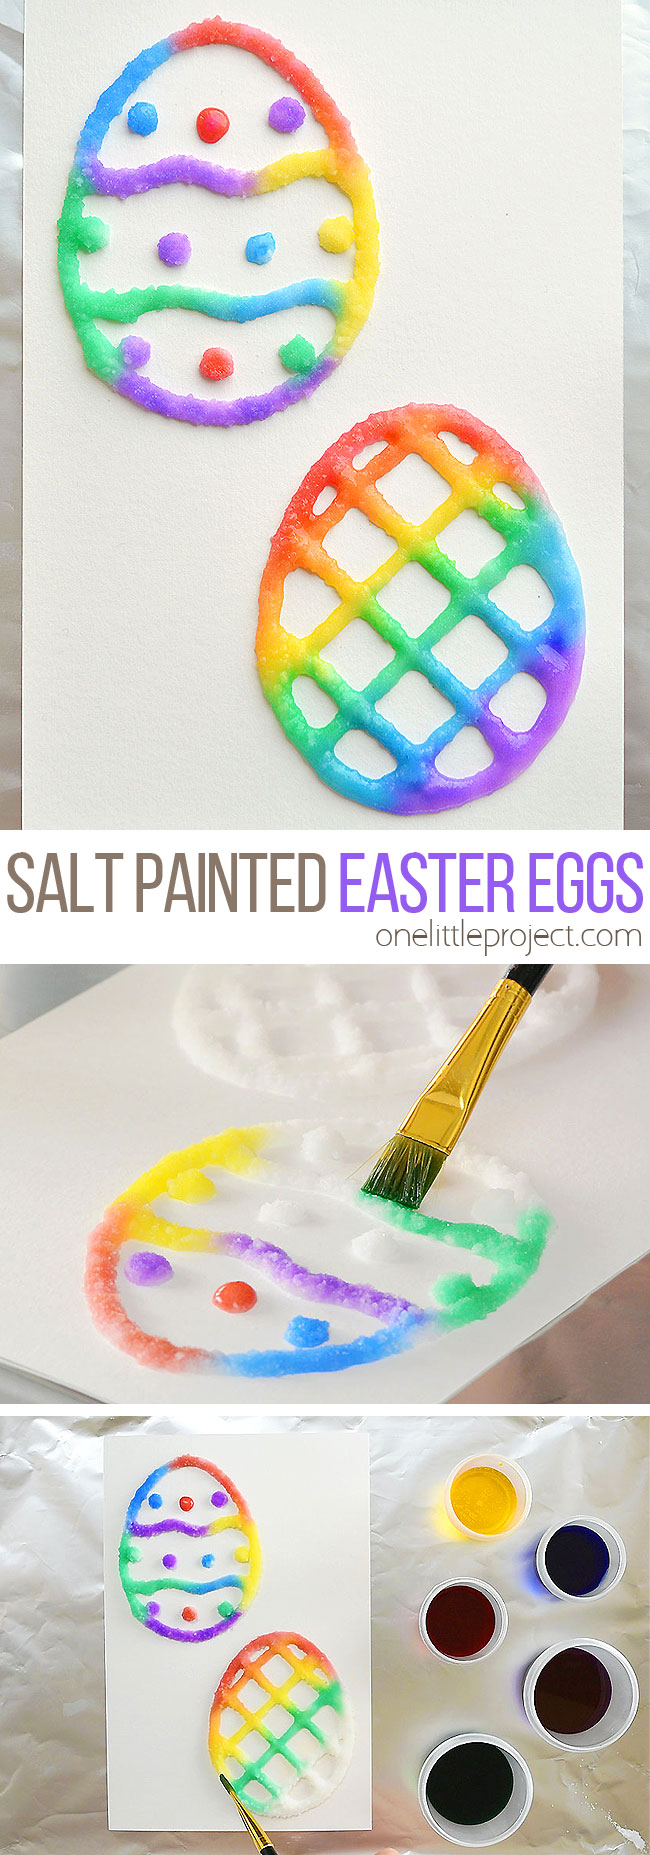 Salt Painted Easter Eggs